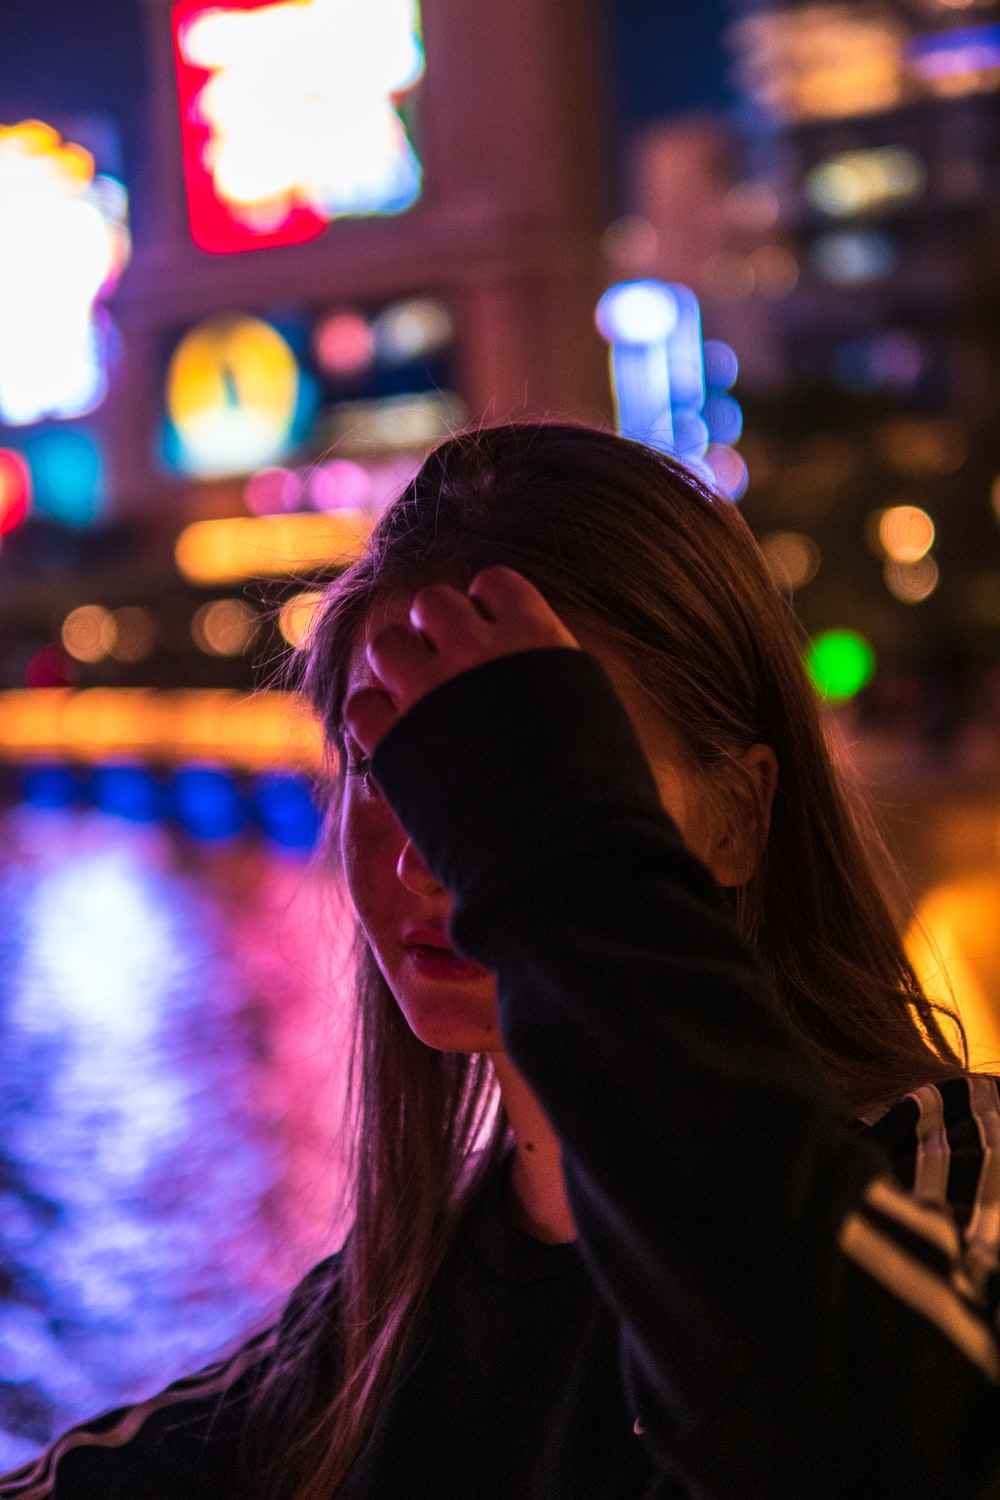 woman in black jacket covering her face with her hair